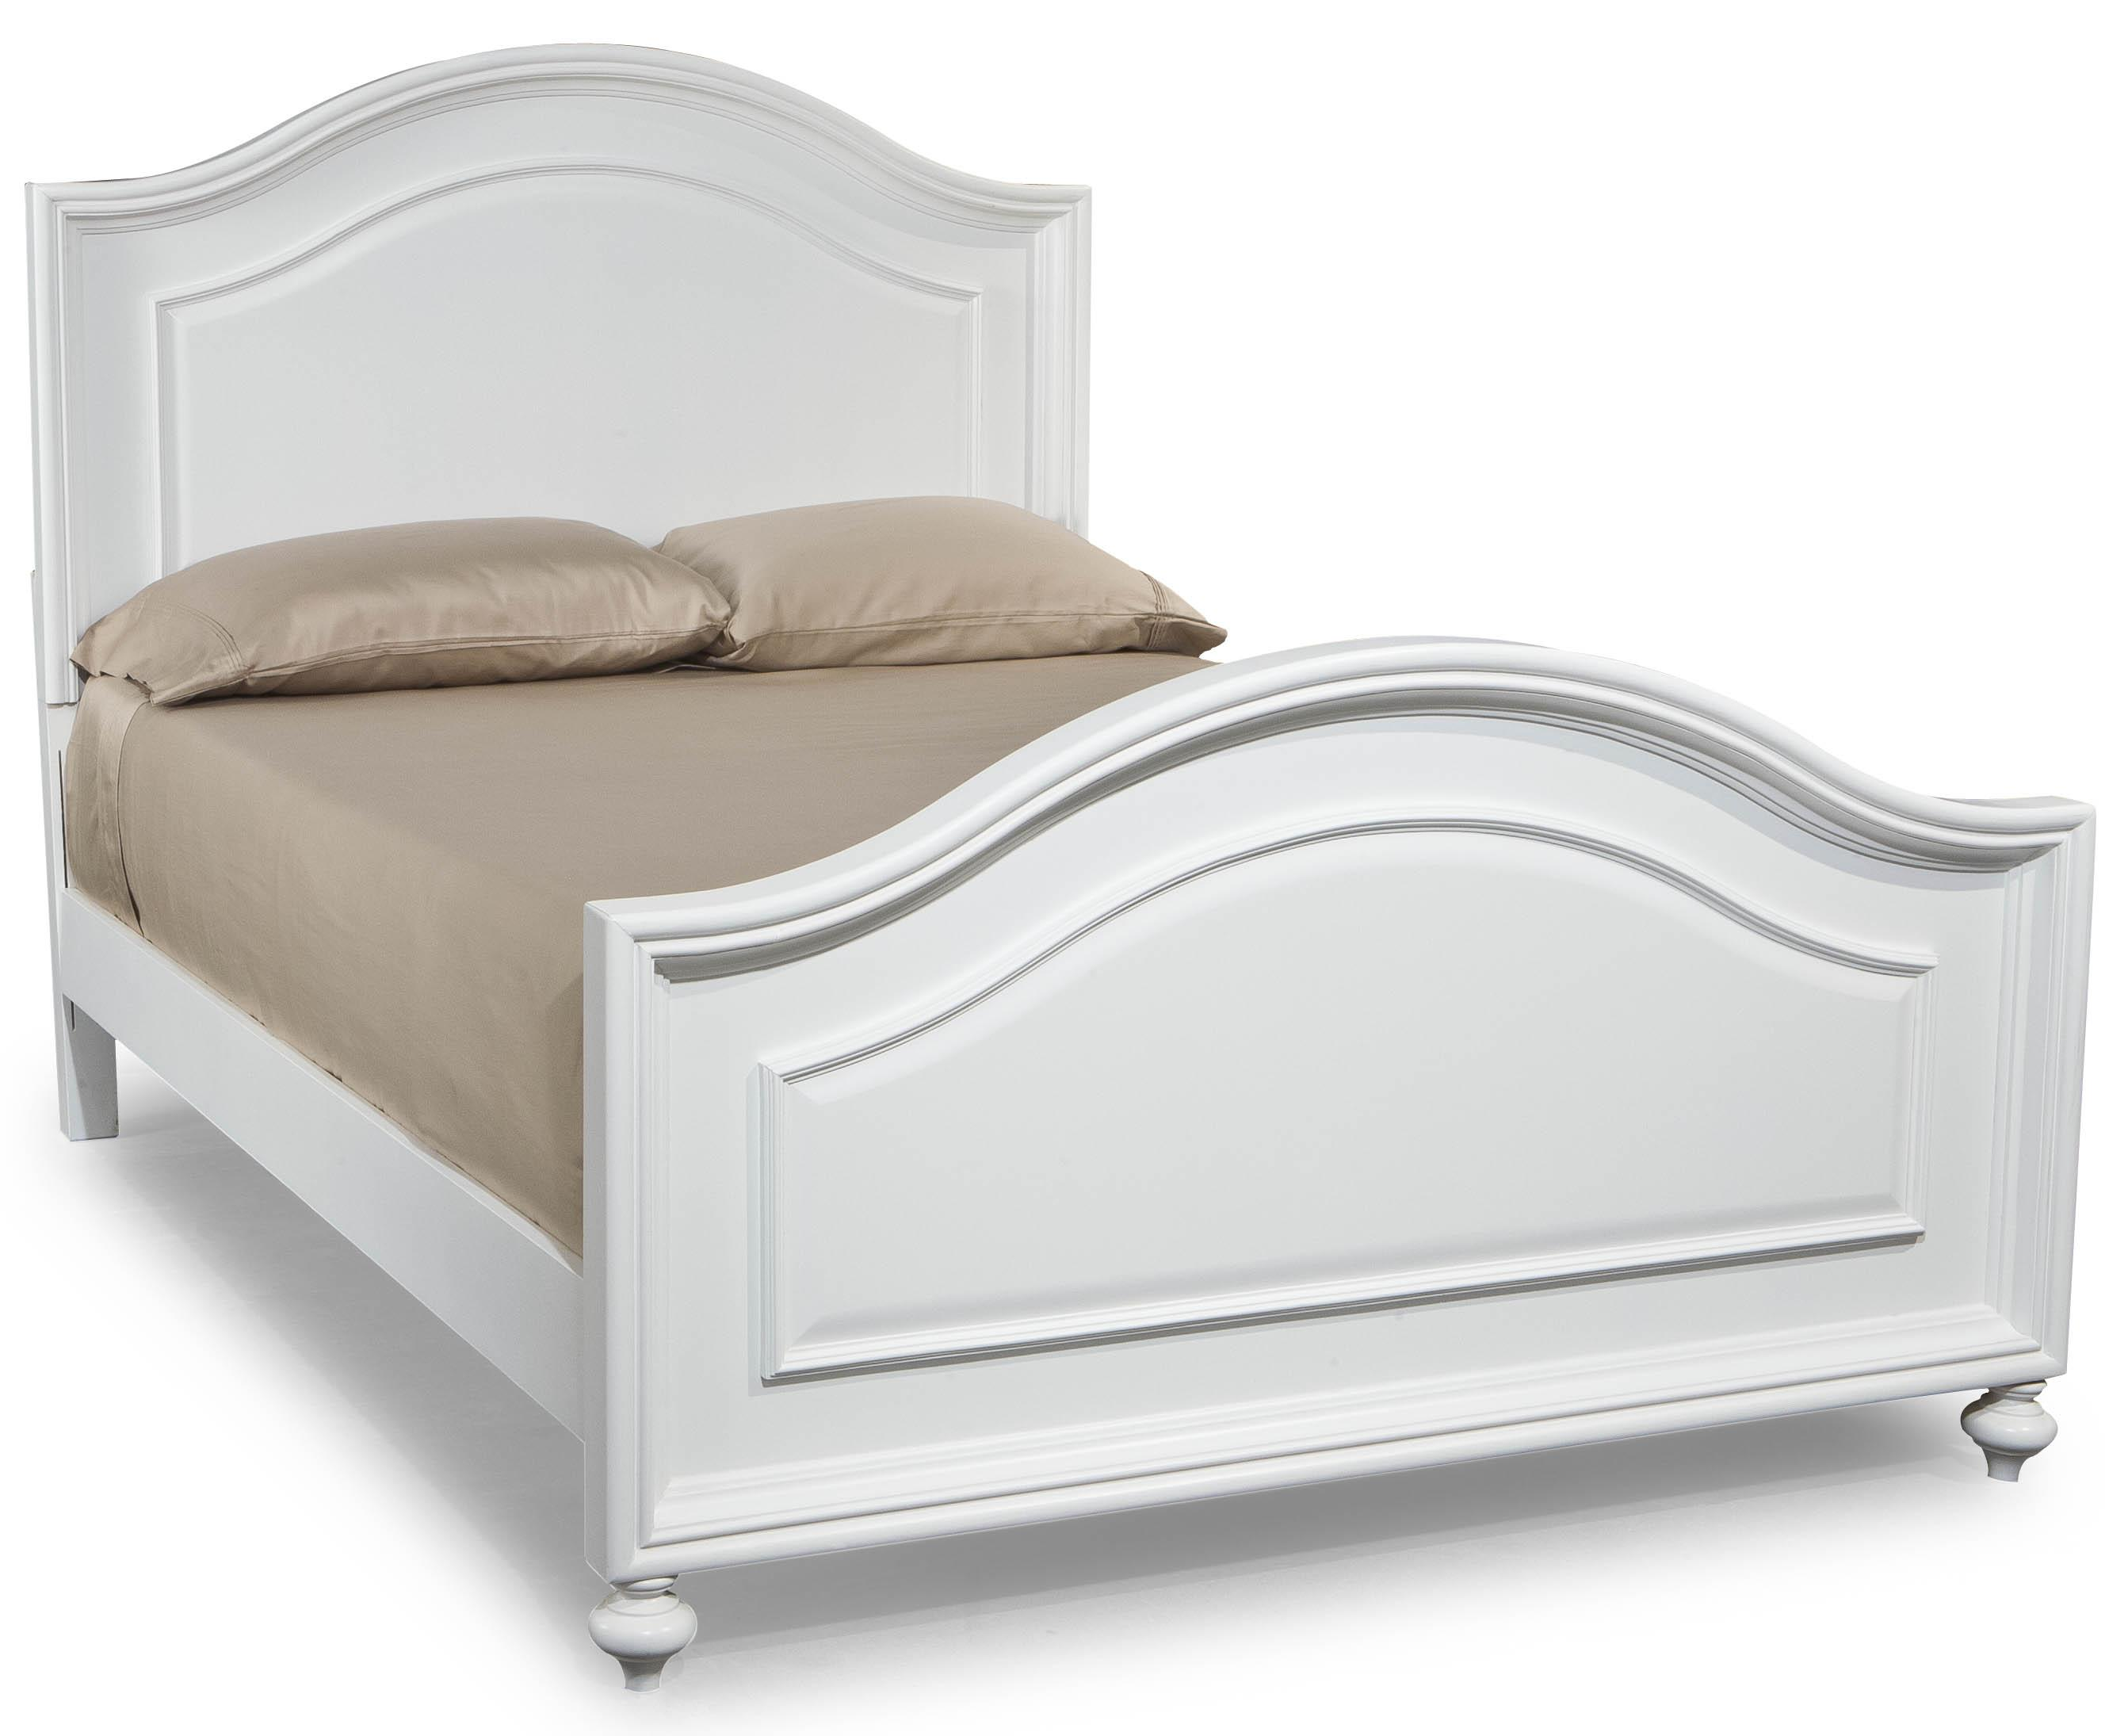 Bed Headboard Madison Full Size Panel Bed With Arched Headboard And Footboard By Legacy Classic Kids At Darvin Furniture